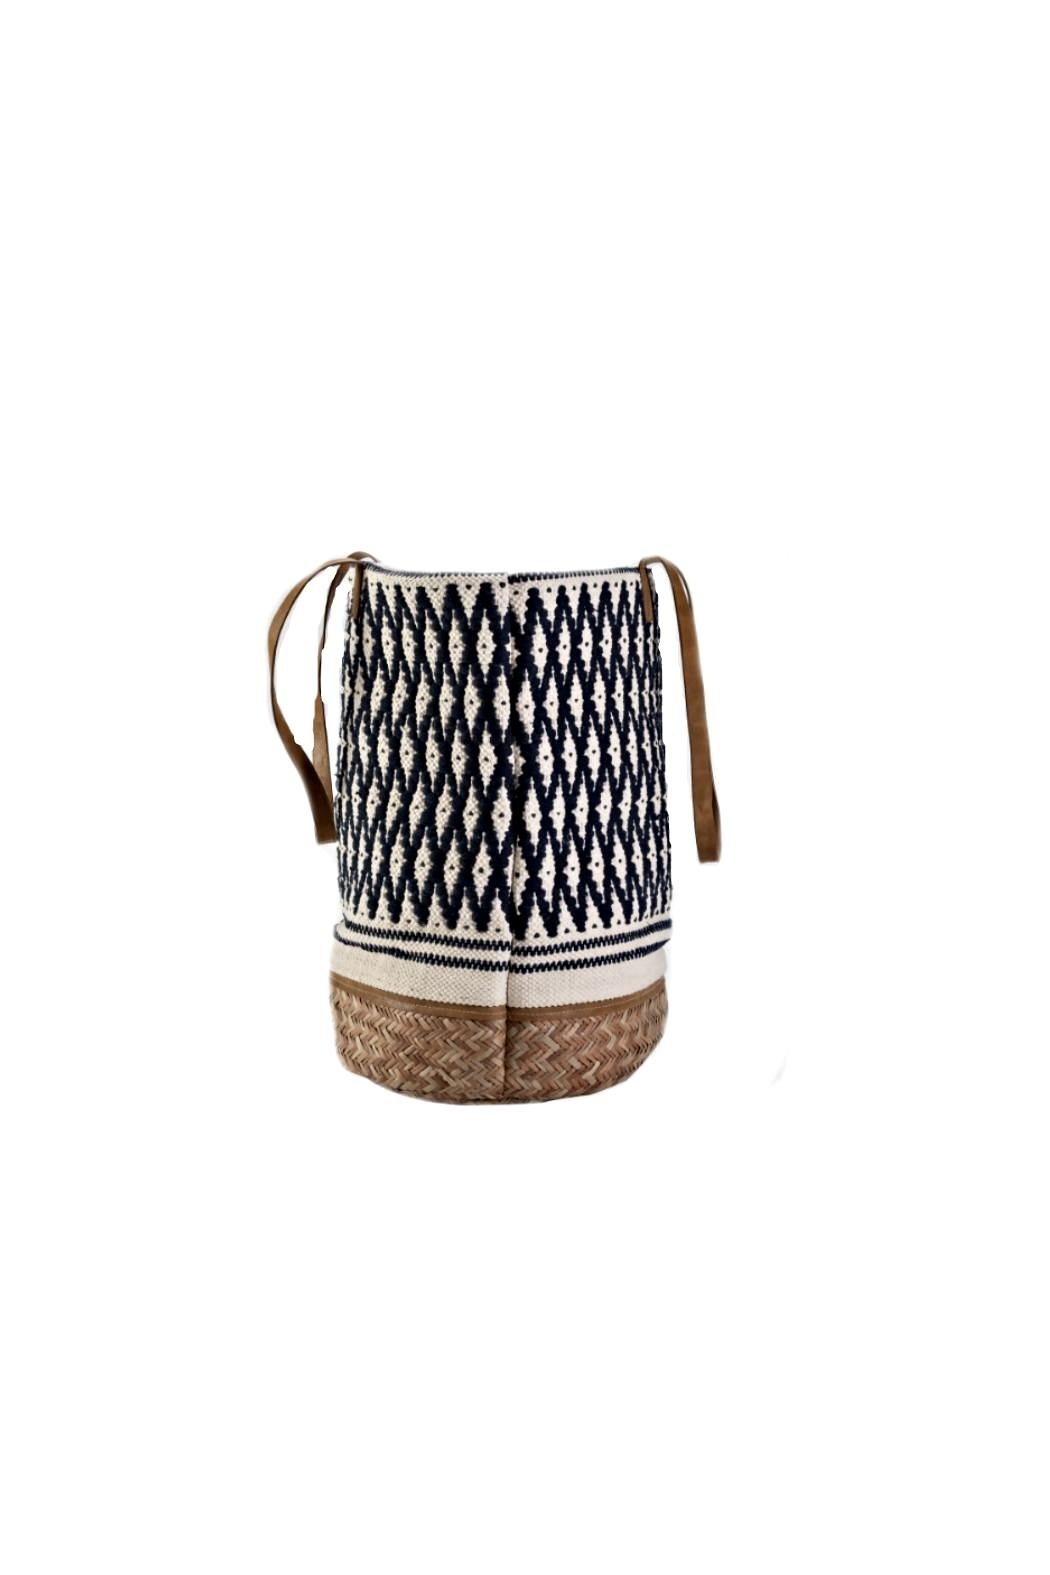 Muche et Muchette Abarcos Tote Geometric Bag - Side Cropped Image